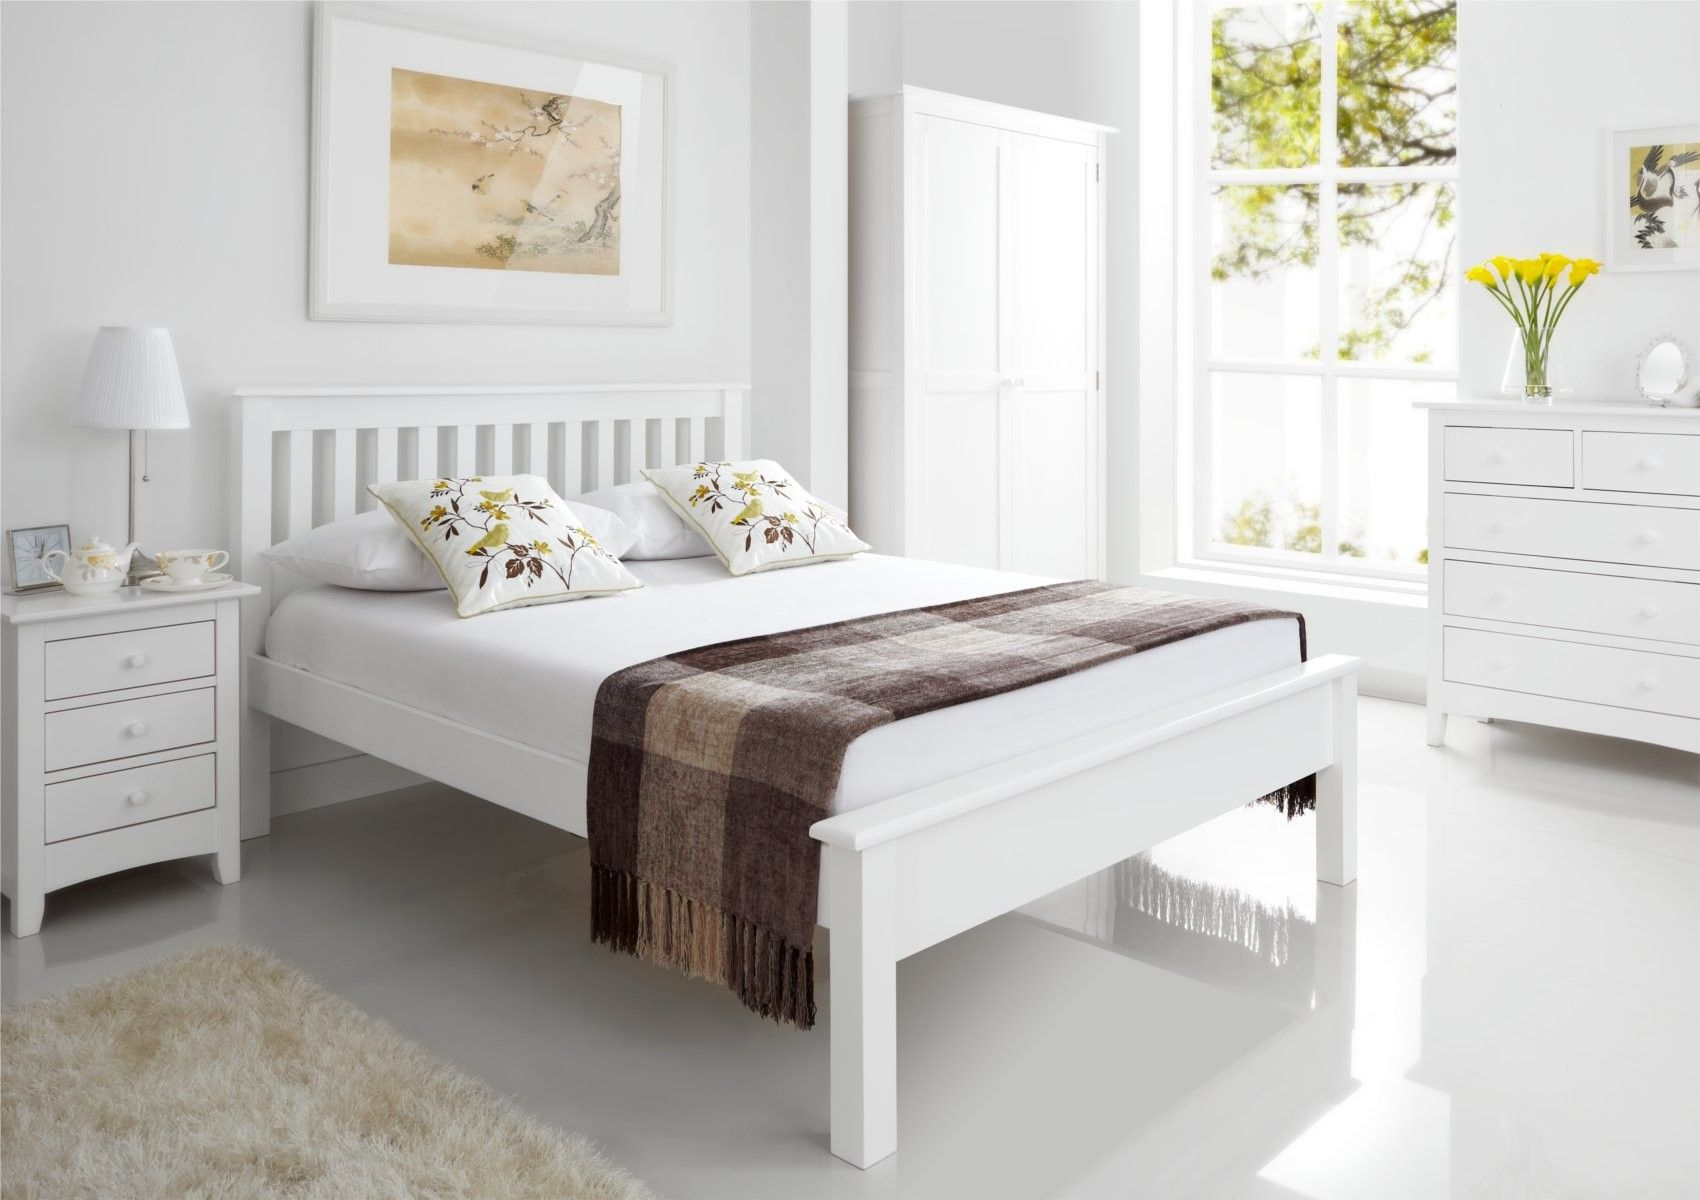 Shaker White Wooden Bed Frame Lfe On Trend For Less Get The